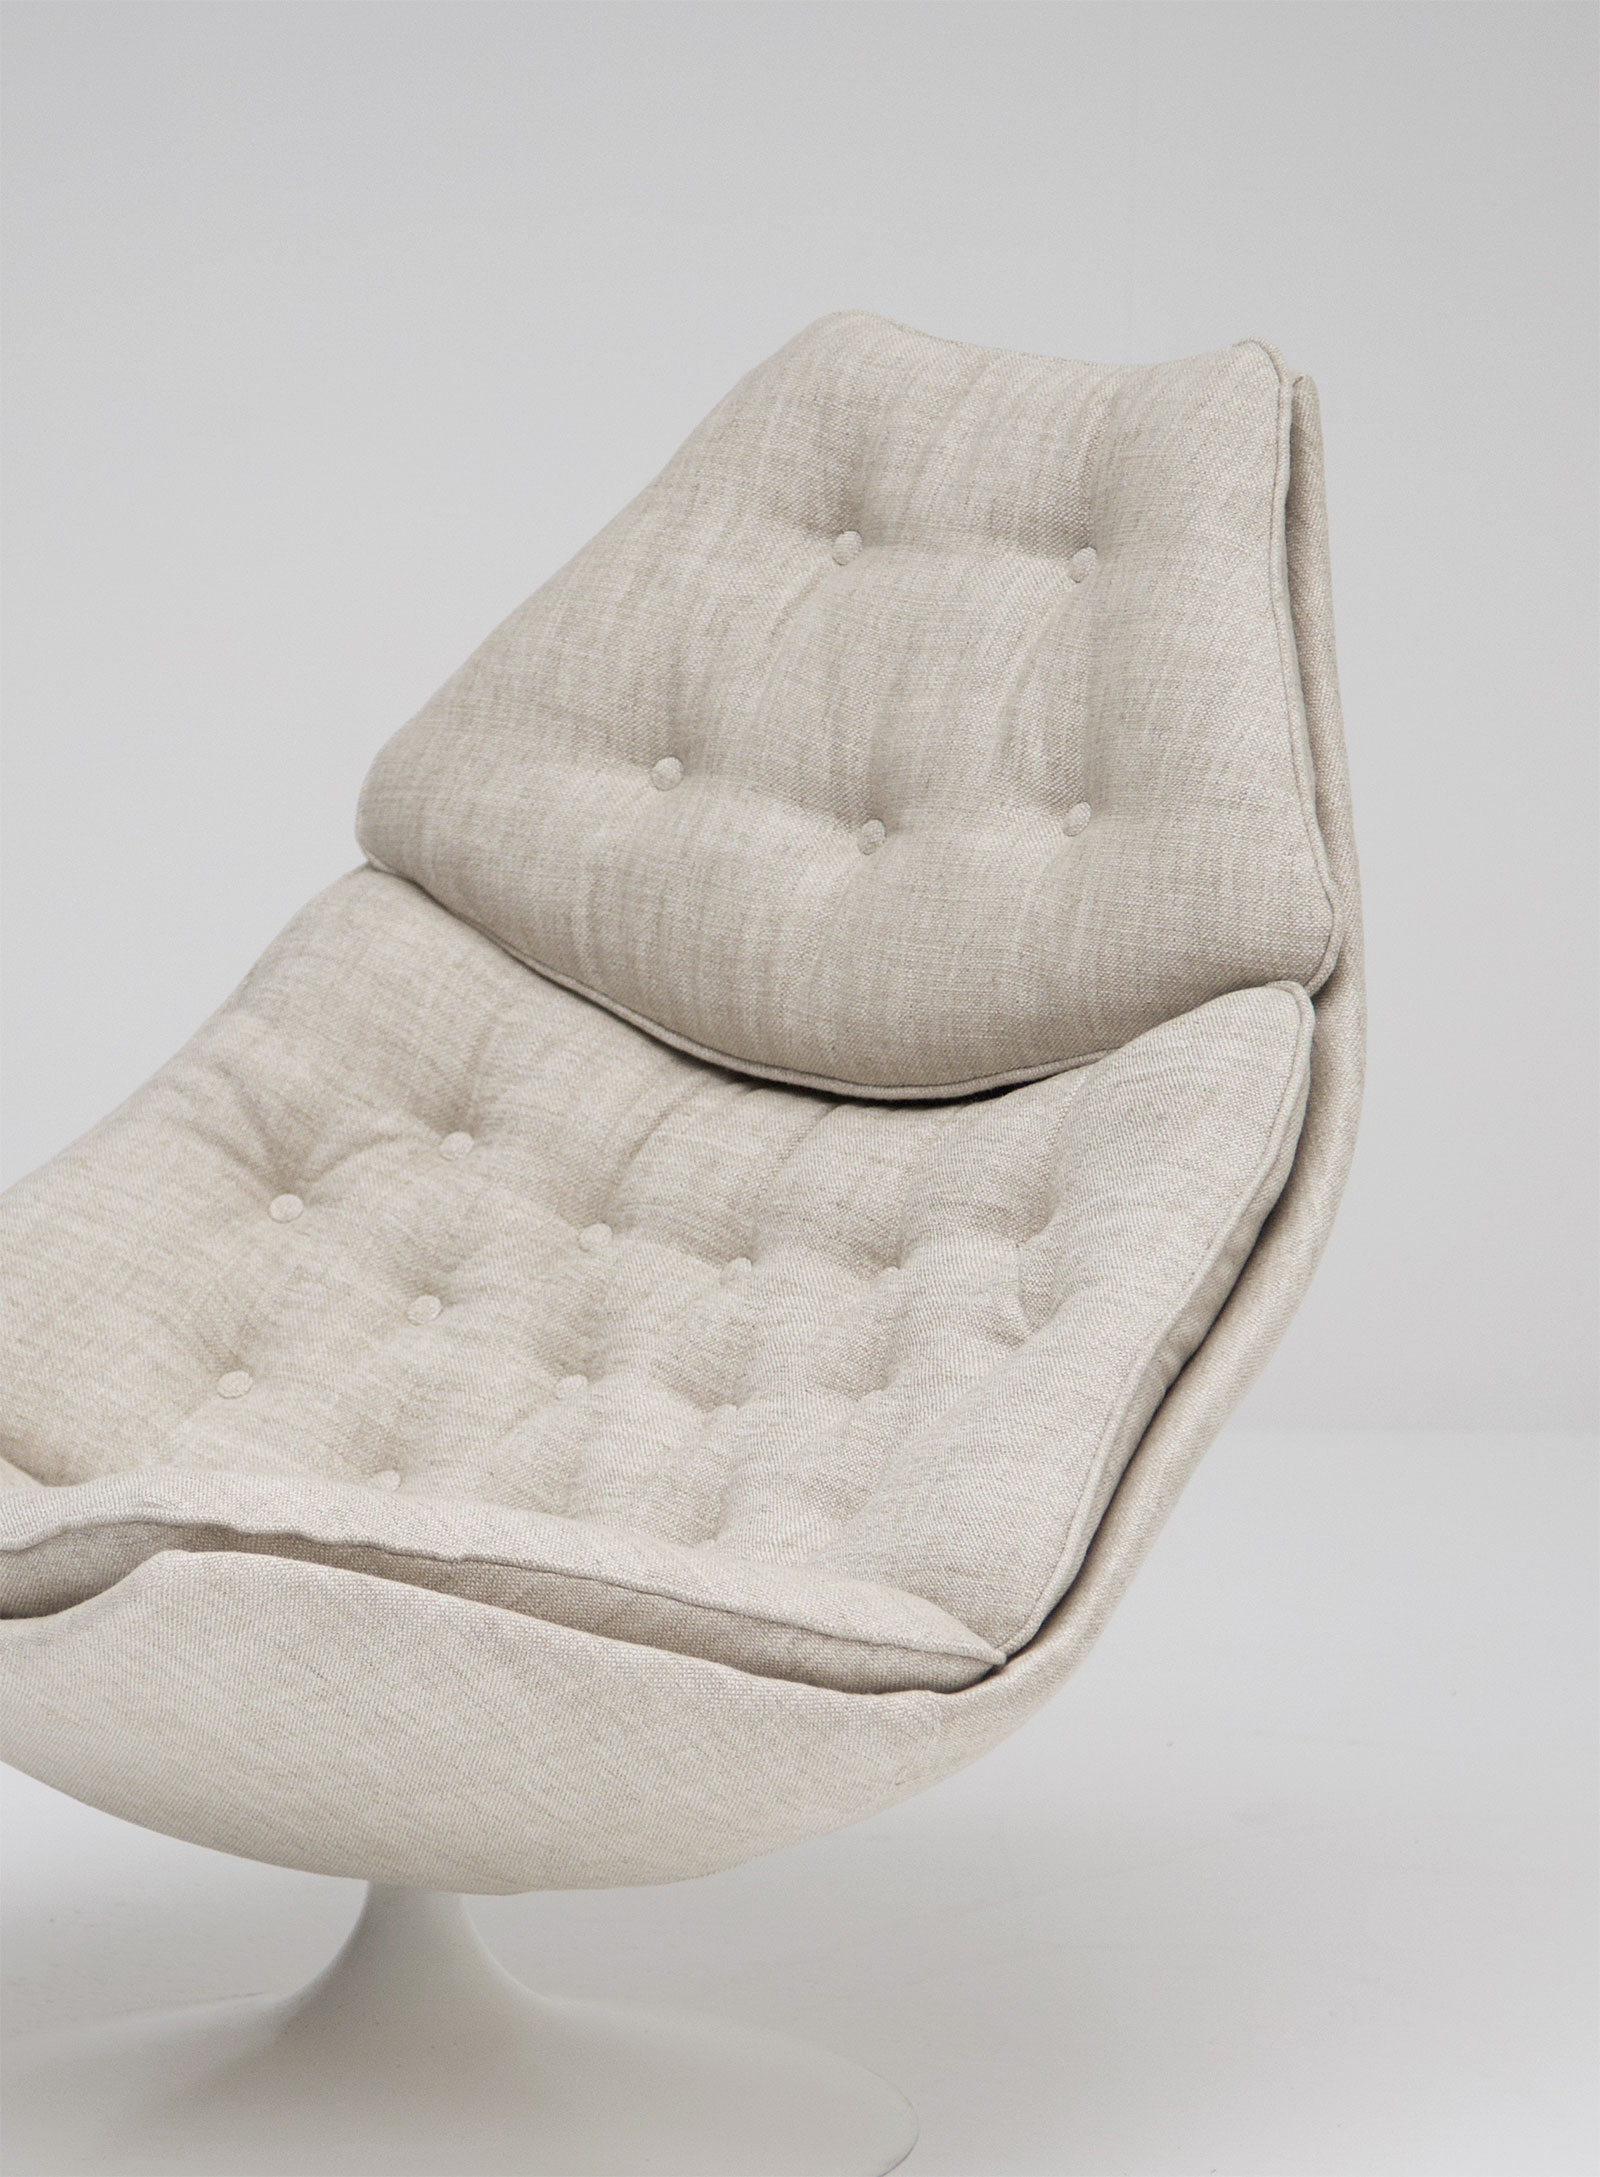 artifort f588 fauteuil by geoffrey harcourtimage 3